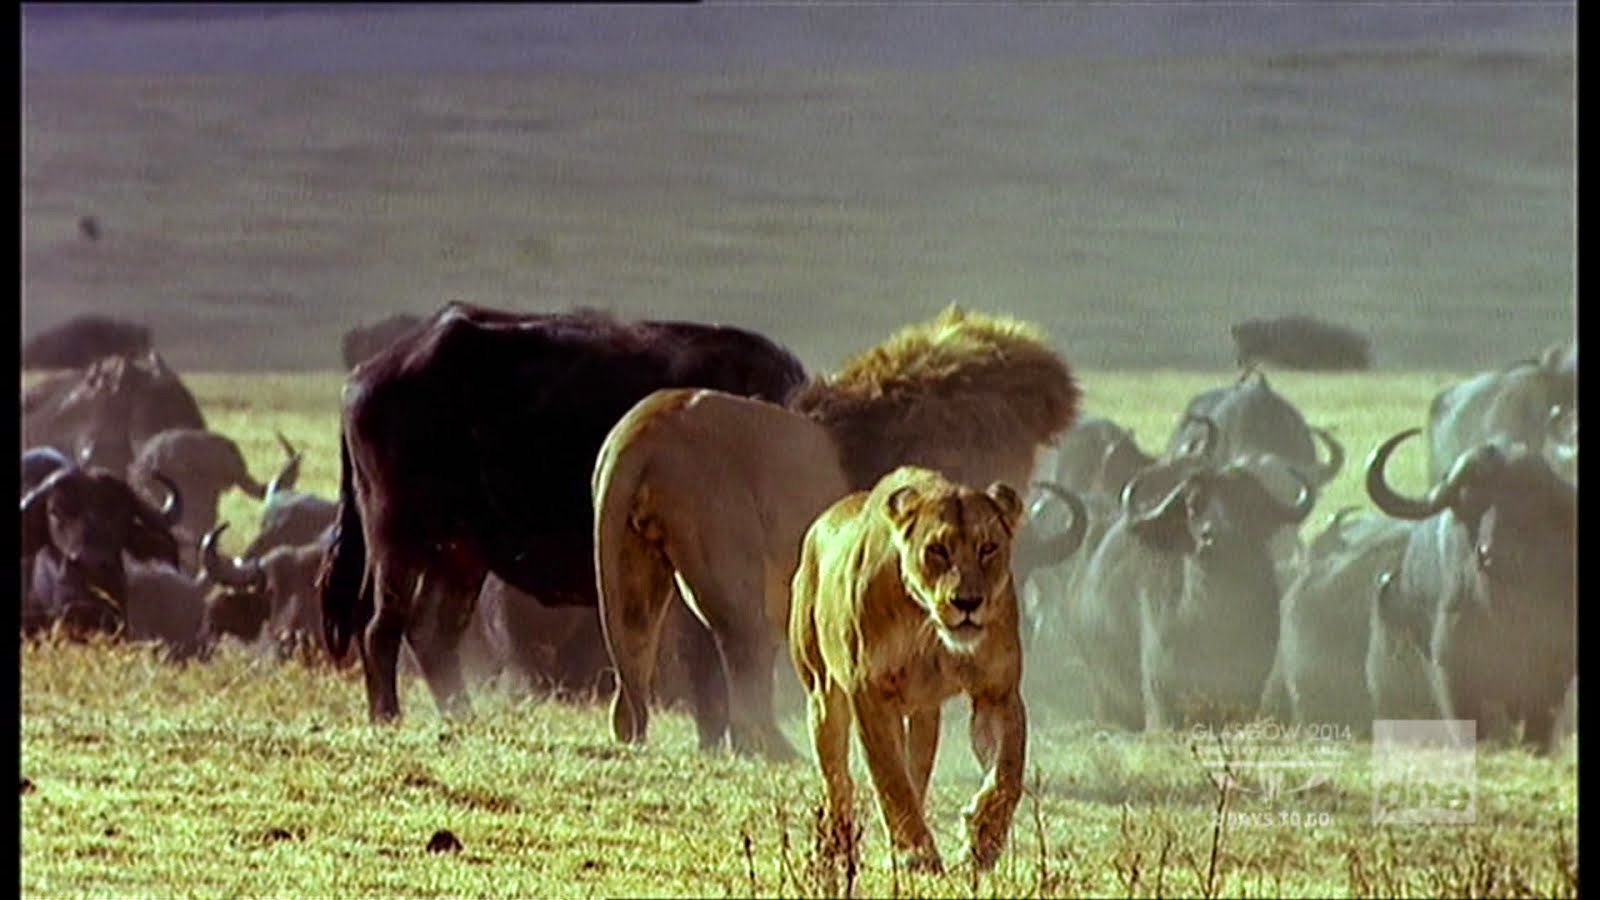 But The Herd Successfully Drove The Lions Away